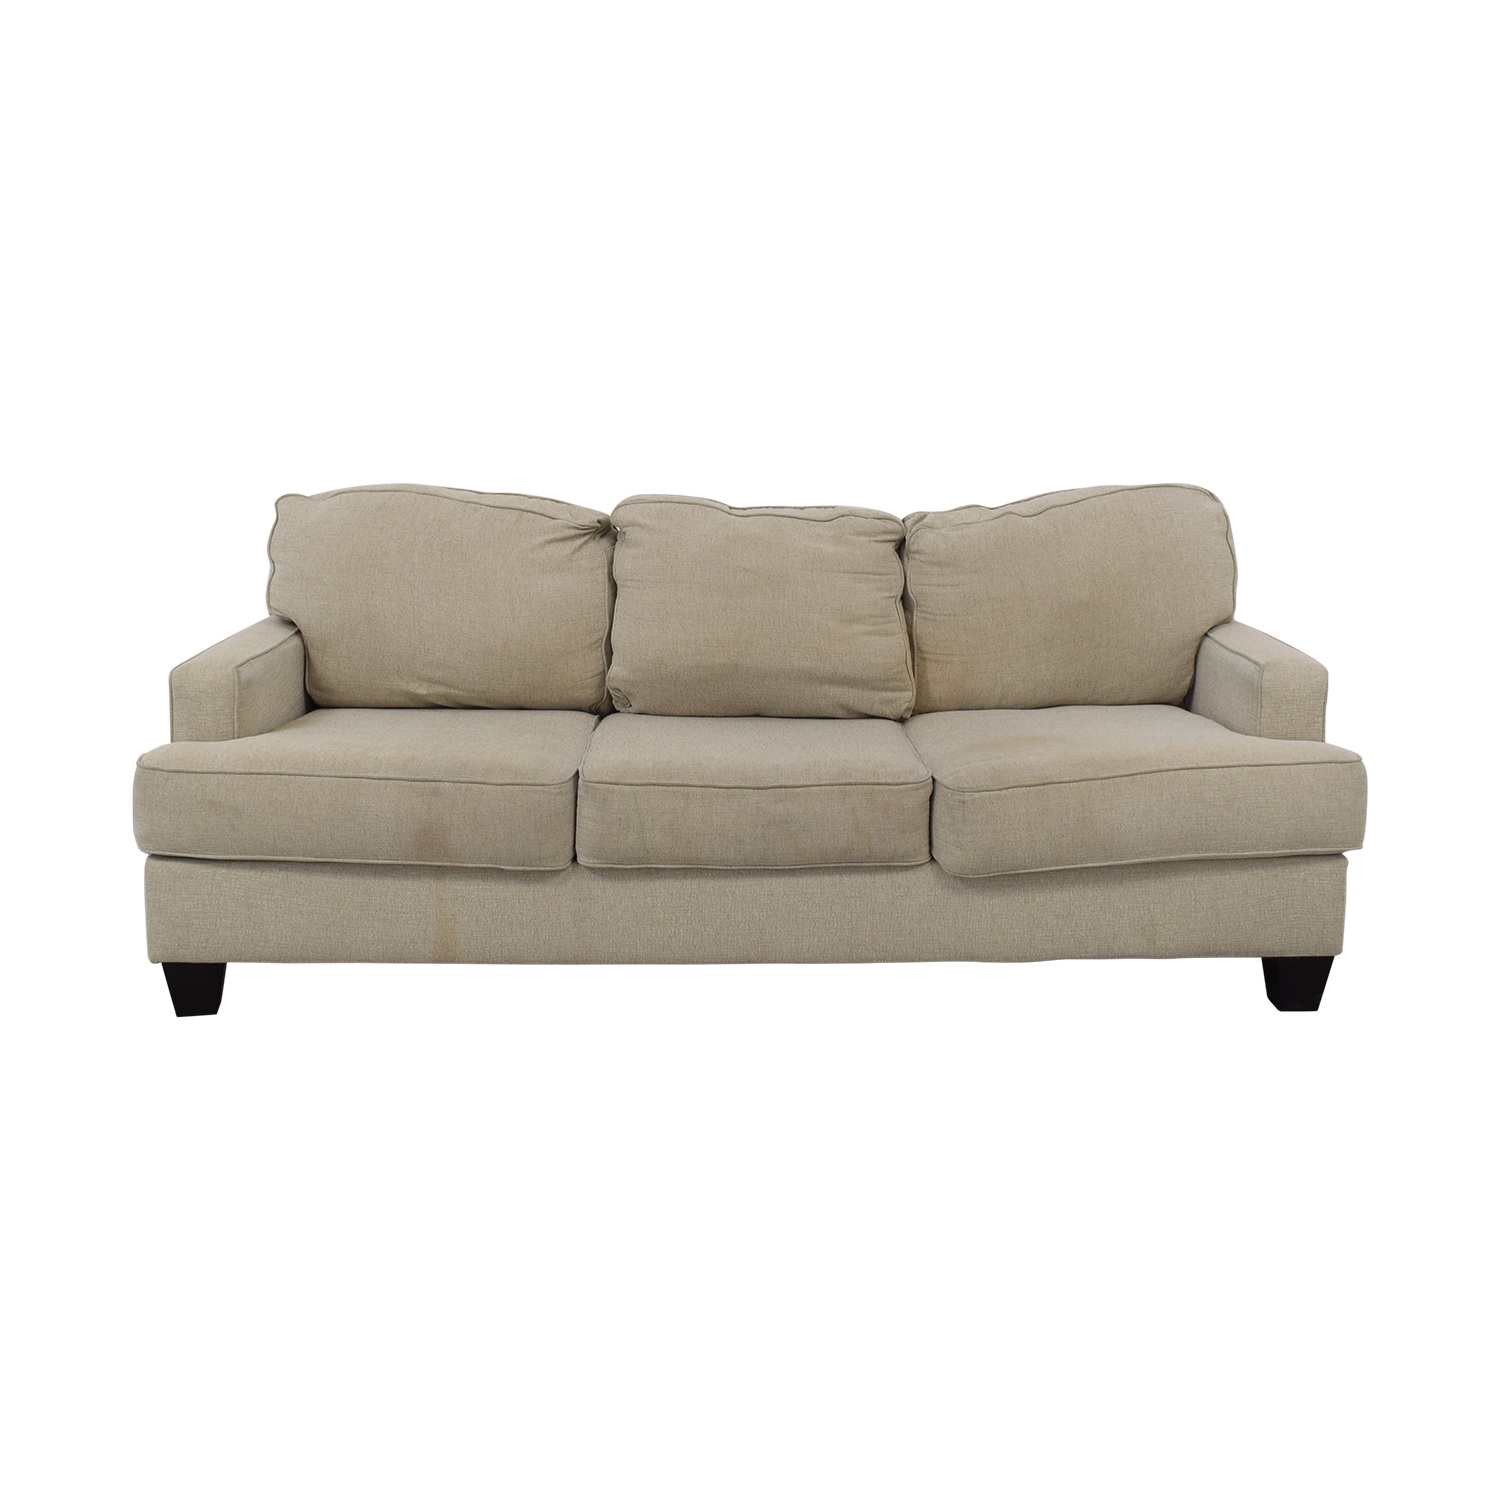 Ashley Furniture Ashley Furniture Sofa for sale